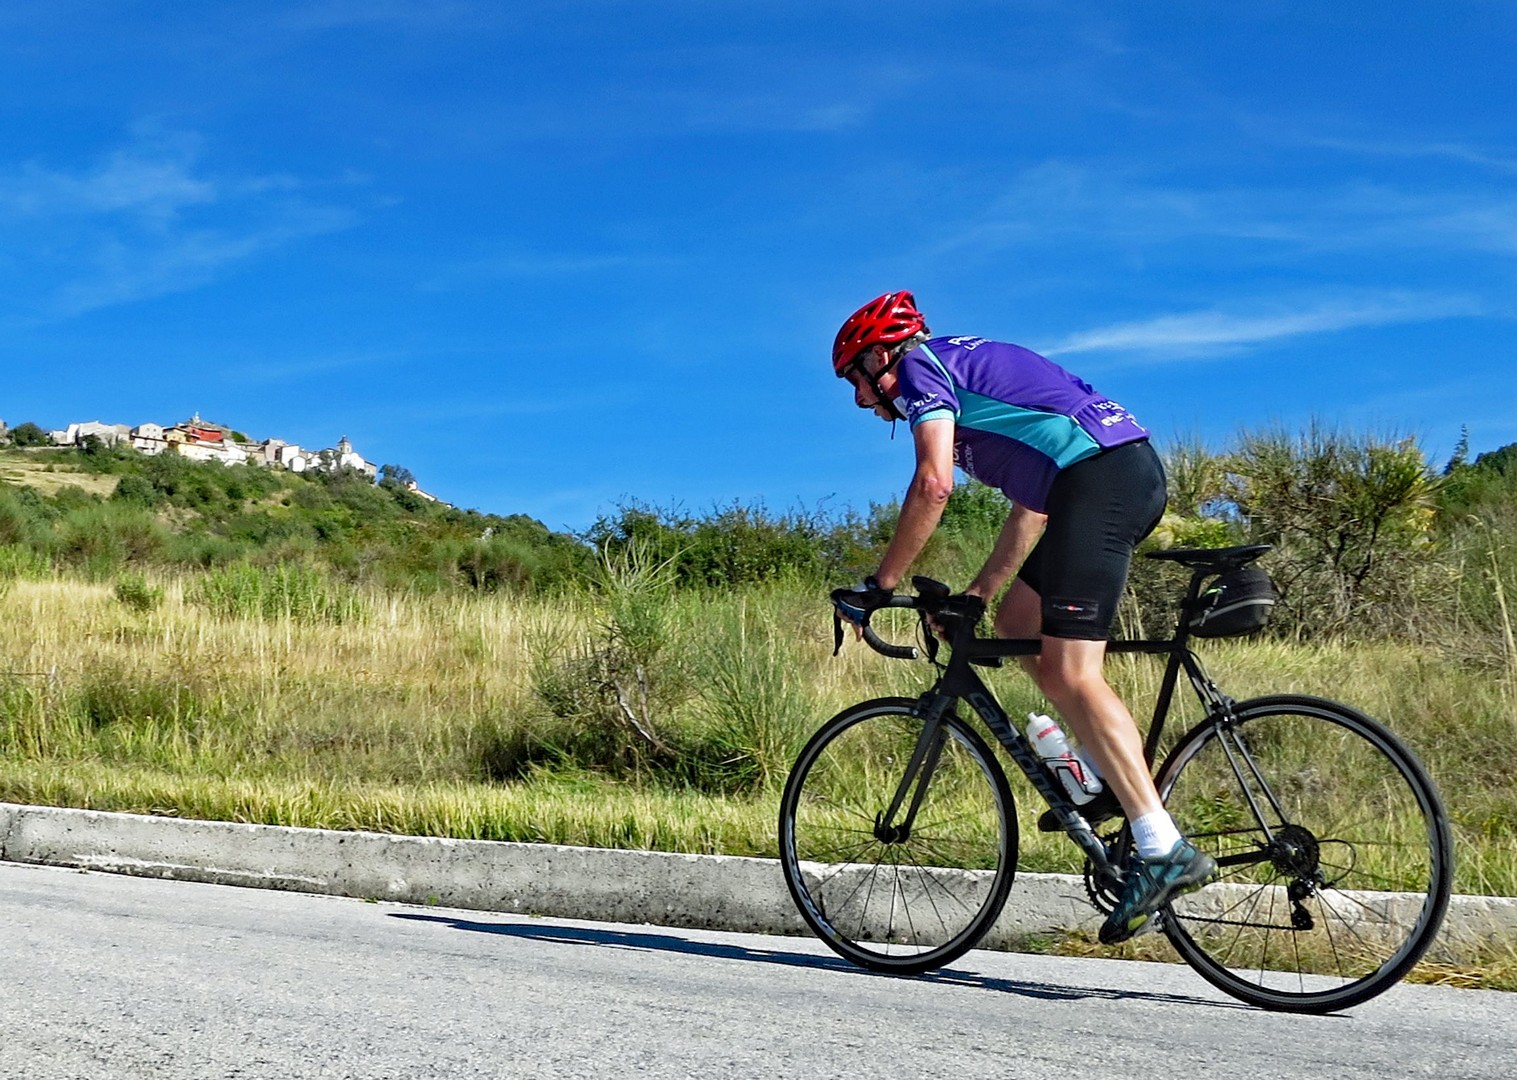 campo-imperatore-italy-abruzzo-appennini-dabruzzo-guided-road-cycling-holiday.jpg - Italy - Abruzzo - Appennini d'Abruzzo - Guided Road Cycling Holiday - Road Cycling